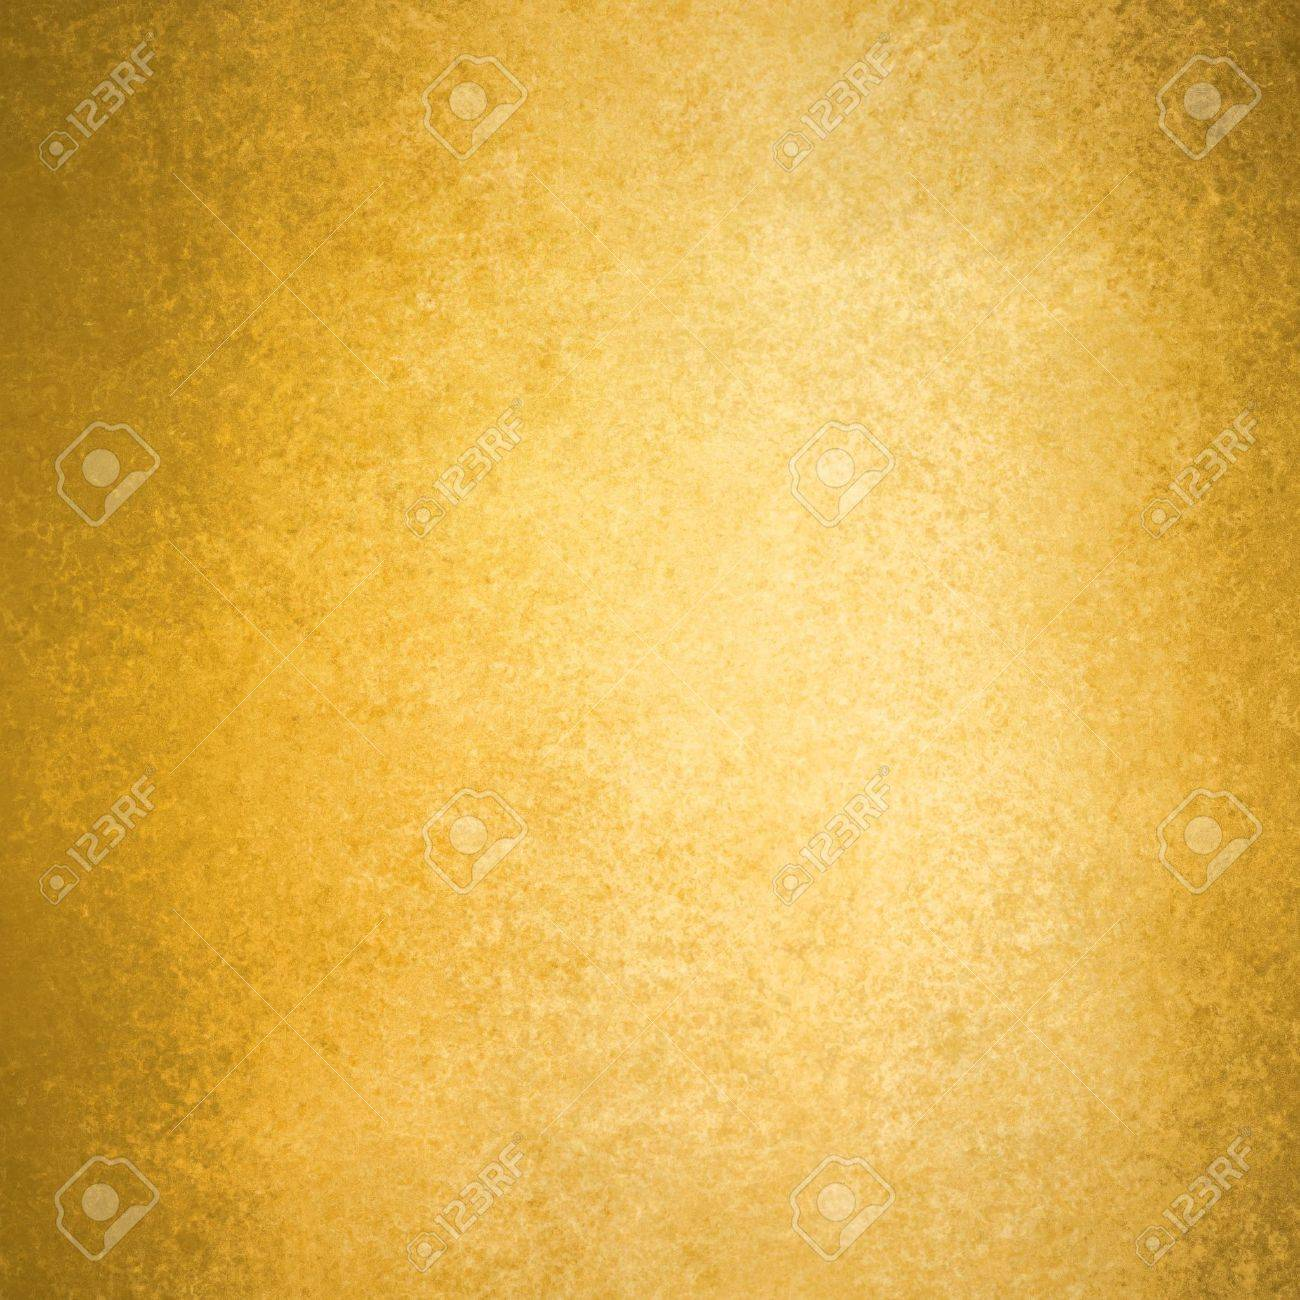 014f9451d79 Abstract Gold Background Warm Yellow Color Tone